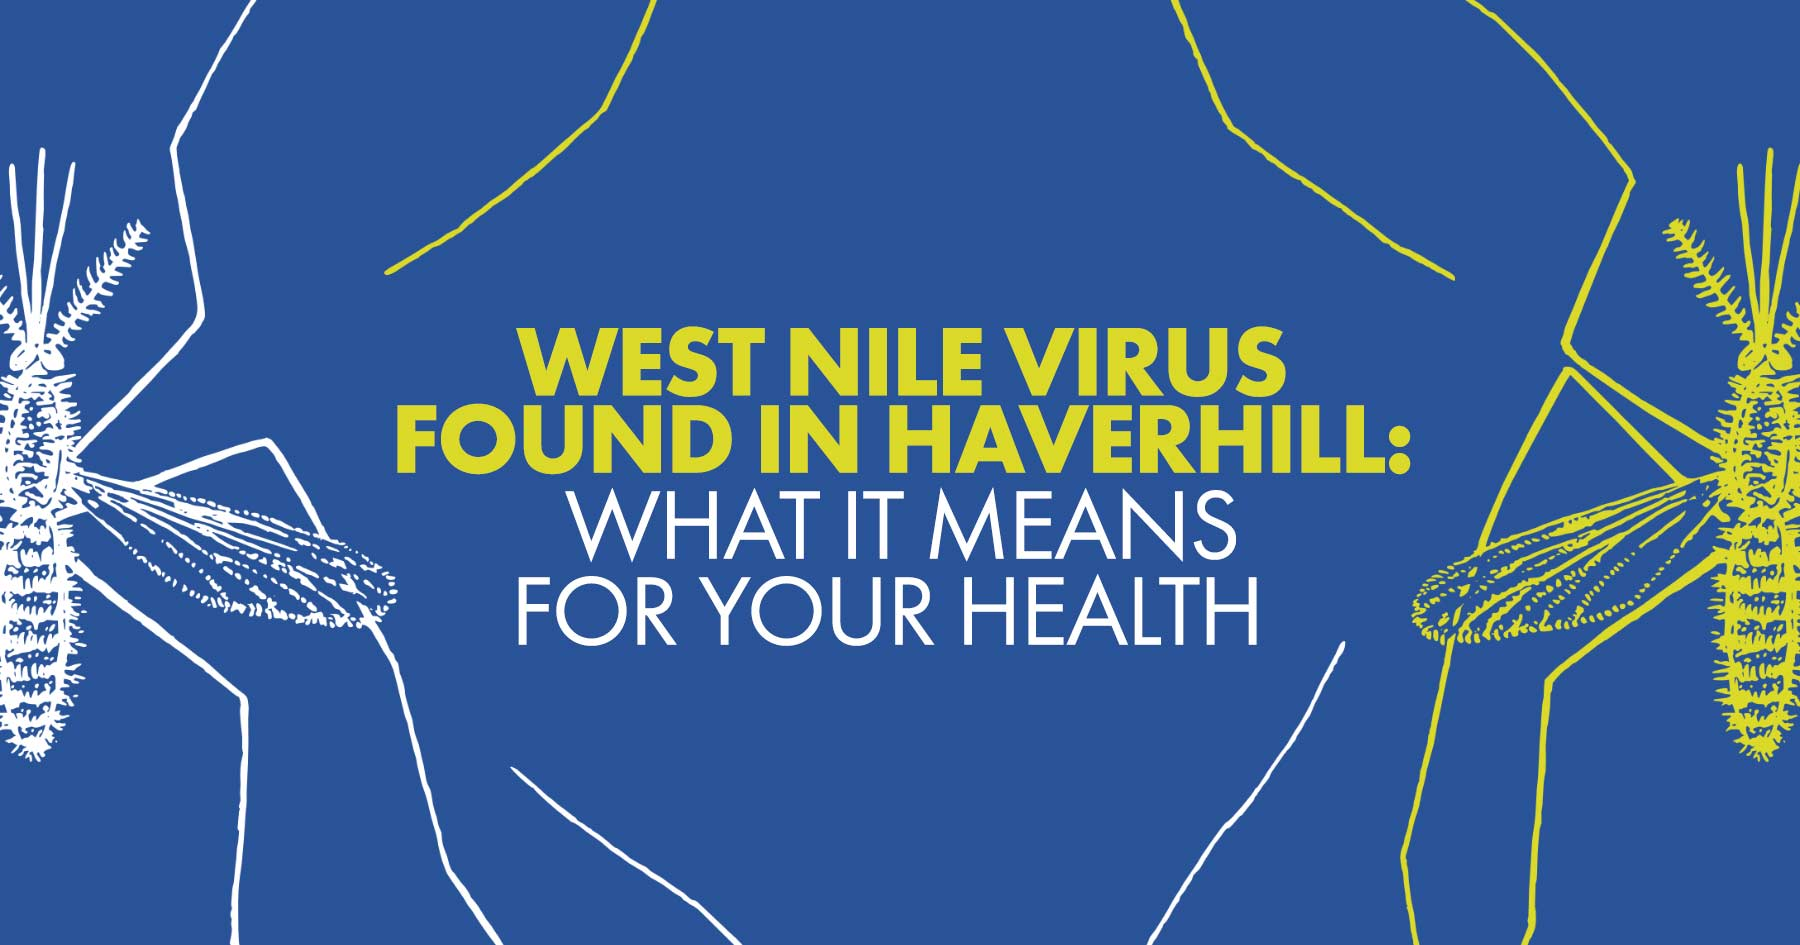 West Nile Virus Found in Haverhill: What does it Mean for Your Health